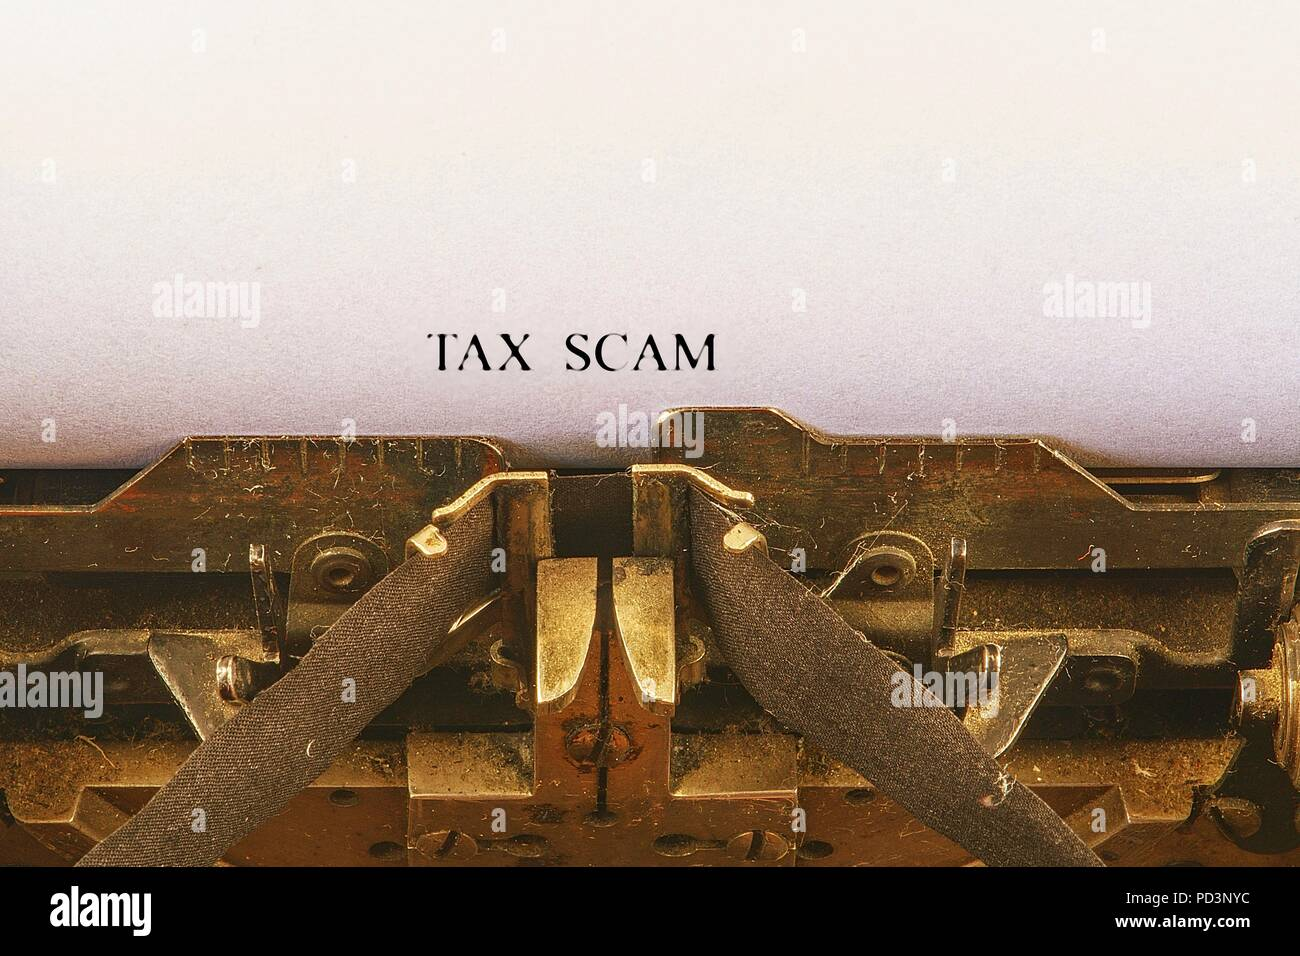 Closeup on vintage typewriter. Front focus on letters making TAX SCAM text. Business concept image with retro office tool - Stock Image